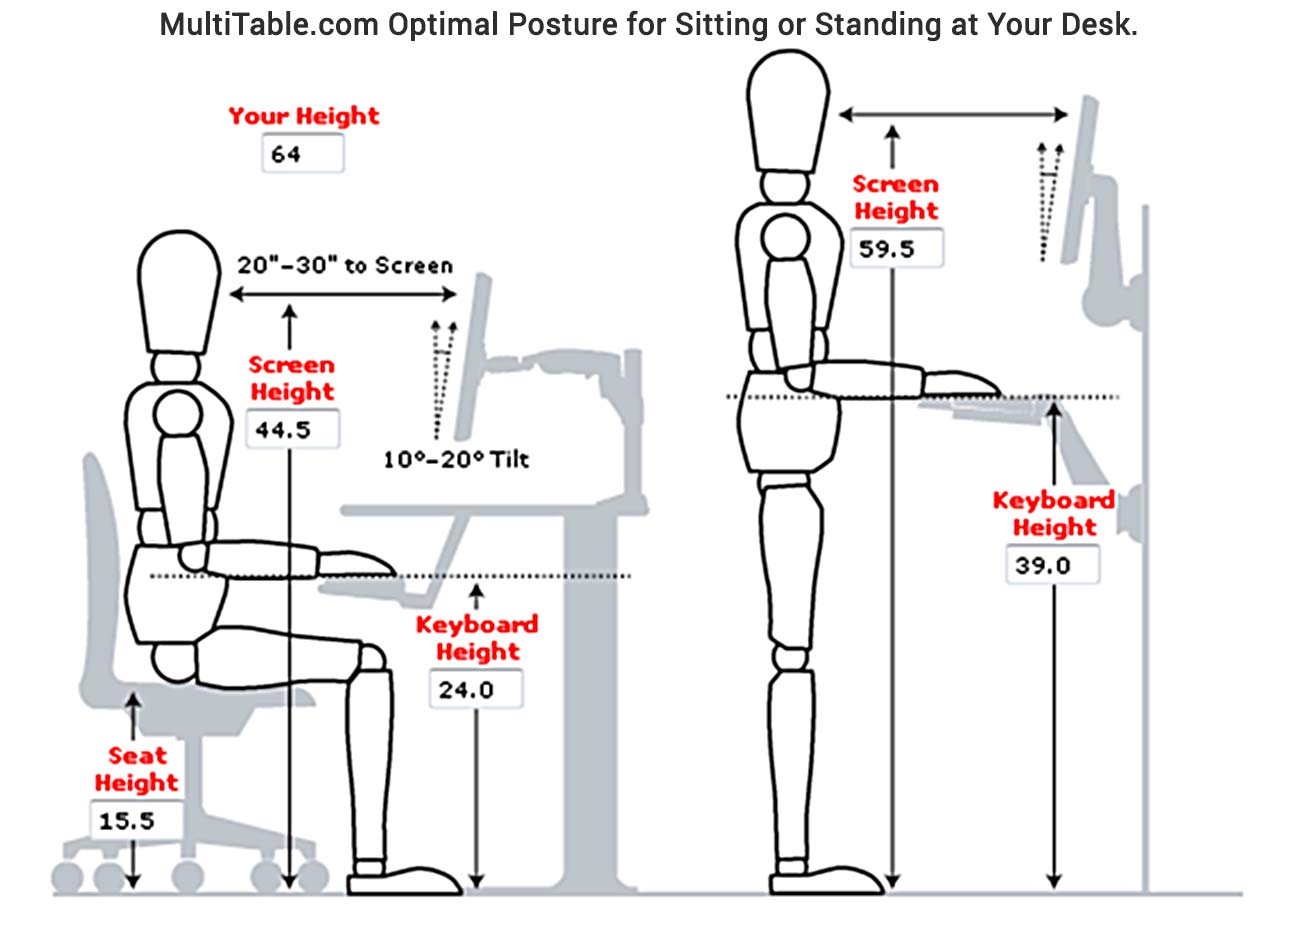 Ideal Standing Desk Posture Ergonomics MultiTable.com